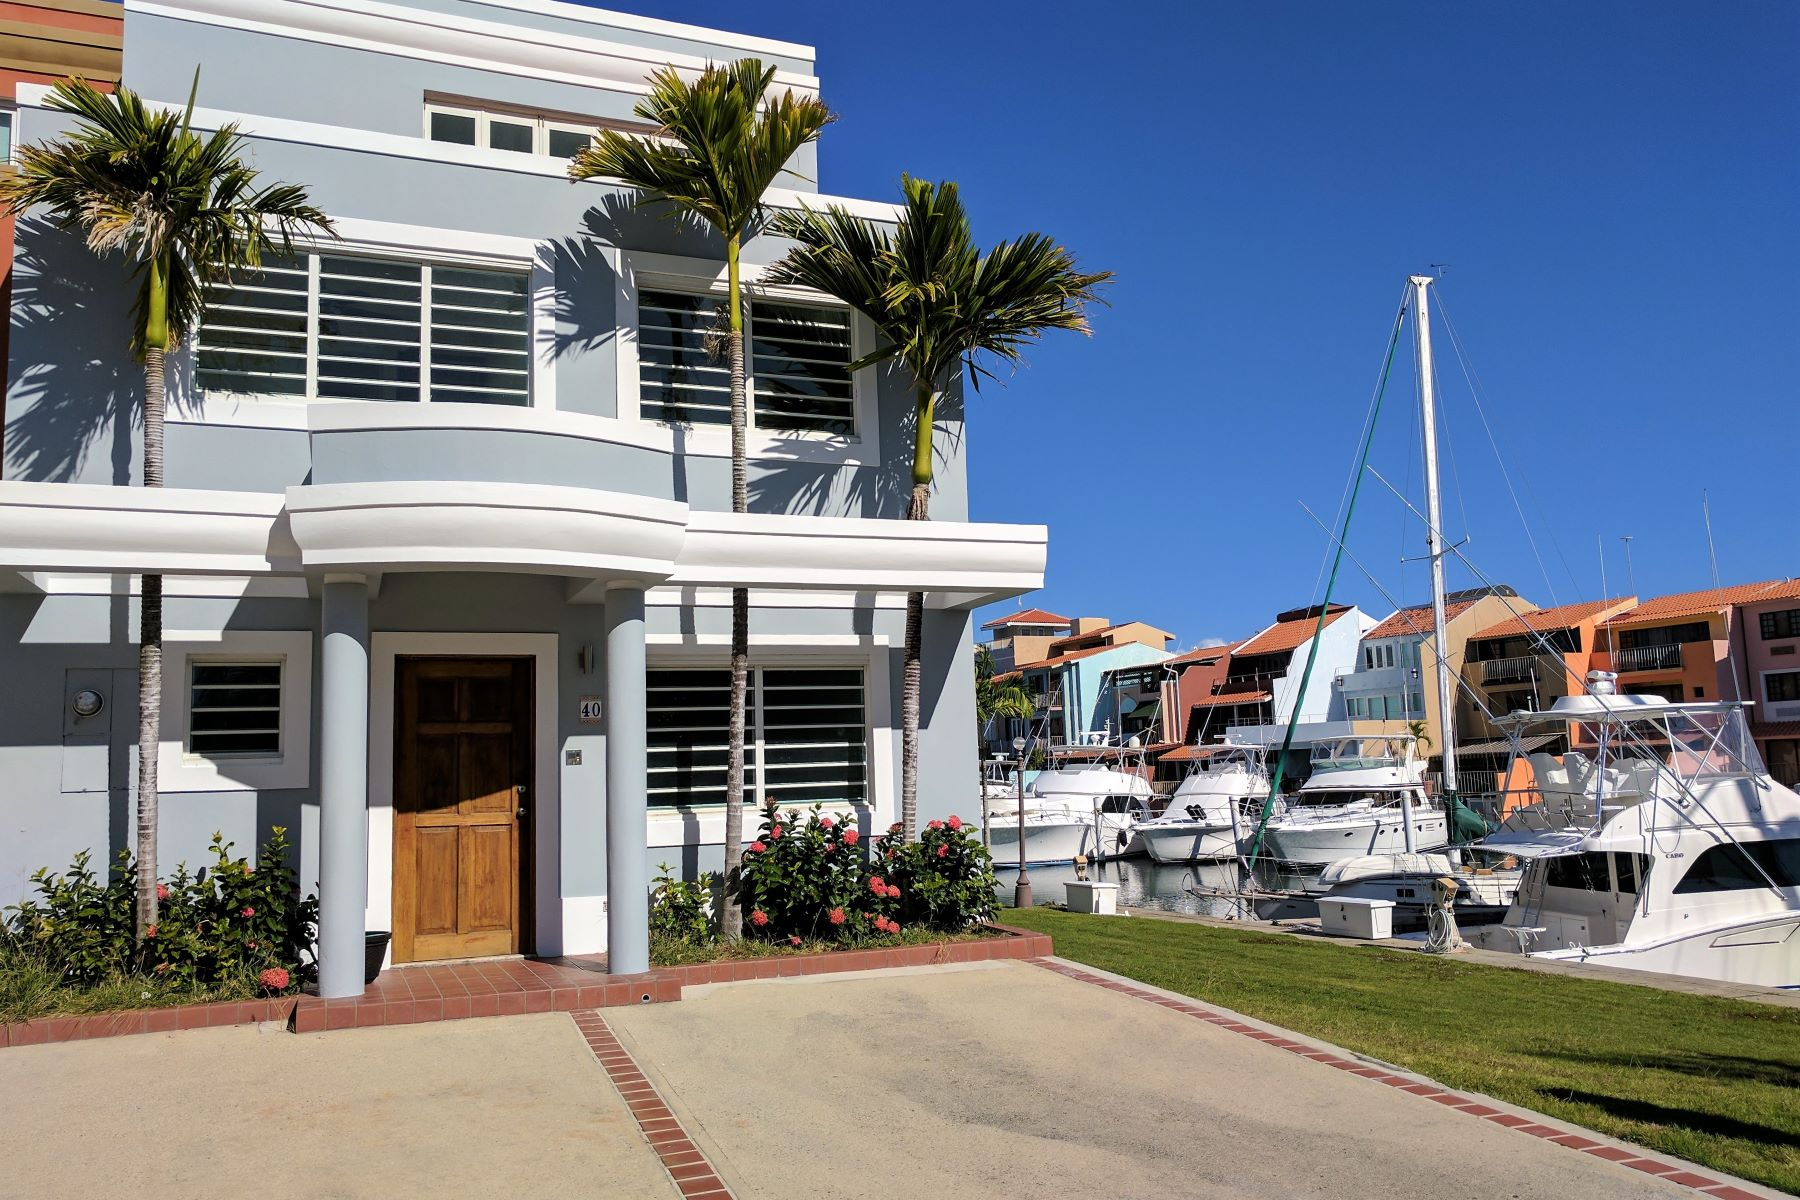 Additional photo for property listing at Waterfront Boaters Townhome at Peninsula 39 Peninsula de San Juan Palmas Del Mar, Puerto Rico 00791 Πουερτο Ρικο